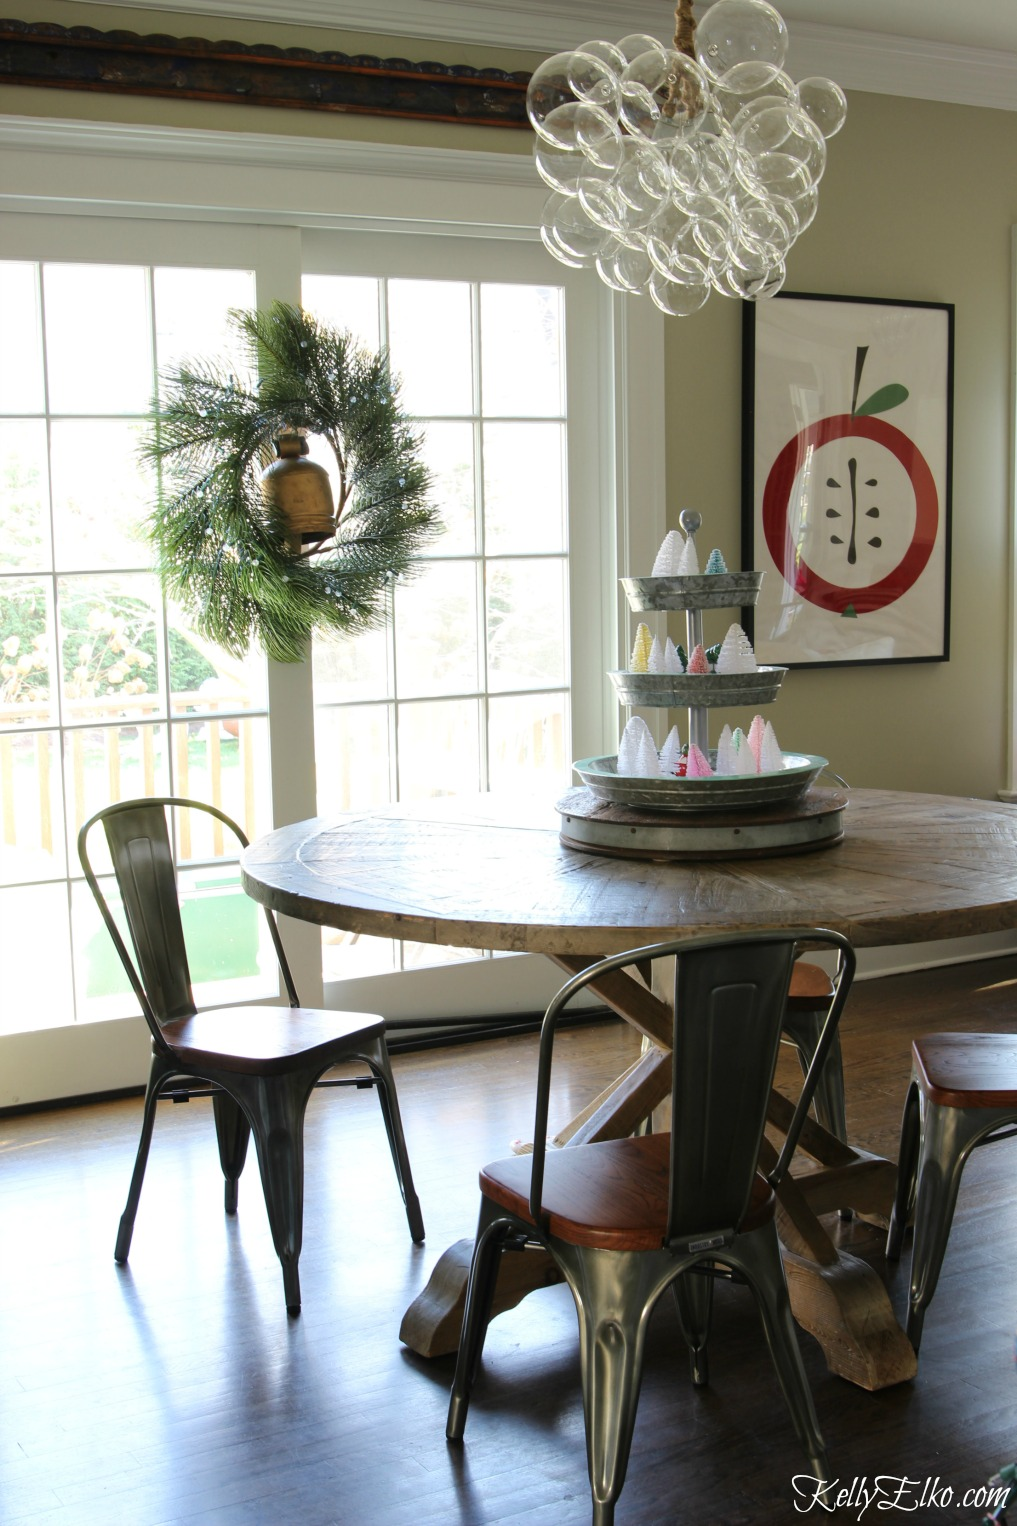 Love the wreath with brass bell in this festive Christmas kitchen ... and that bubble chandelier is amazing! kellyelko.com